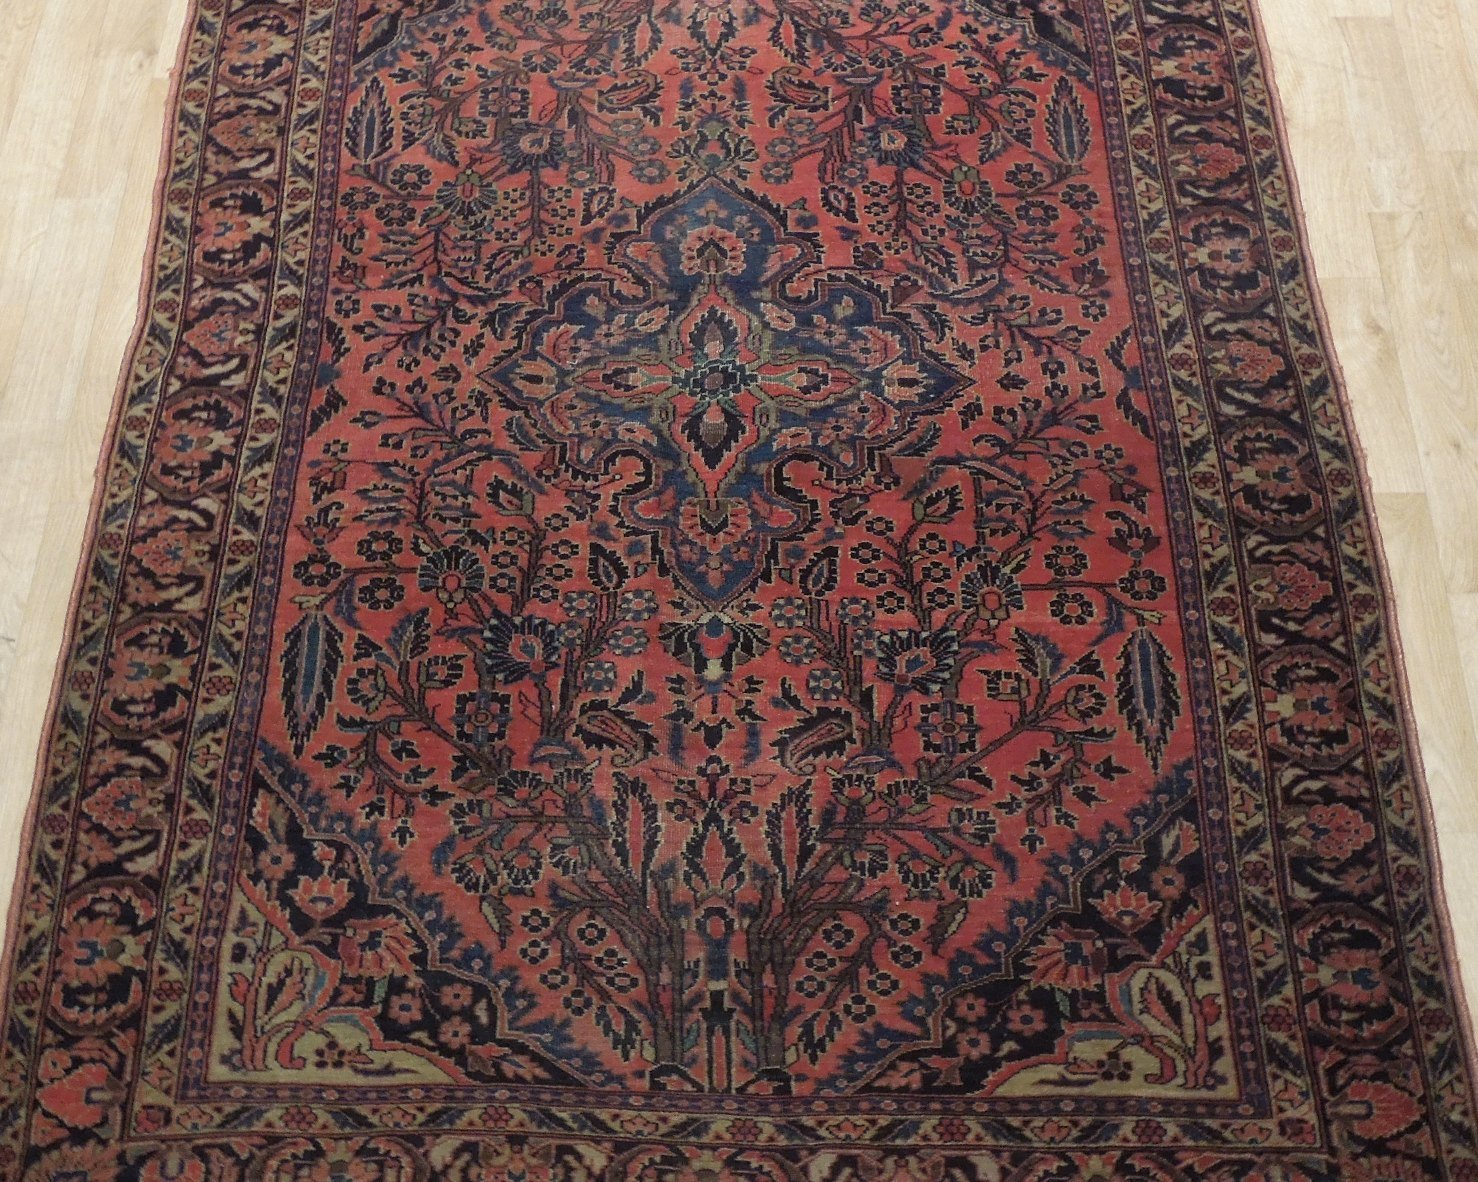 Sarouk Persian Wool Hand-Knotted Rug 5' x 7' Salmon Red Vintage Antique Red Rug image 9